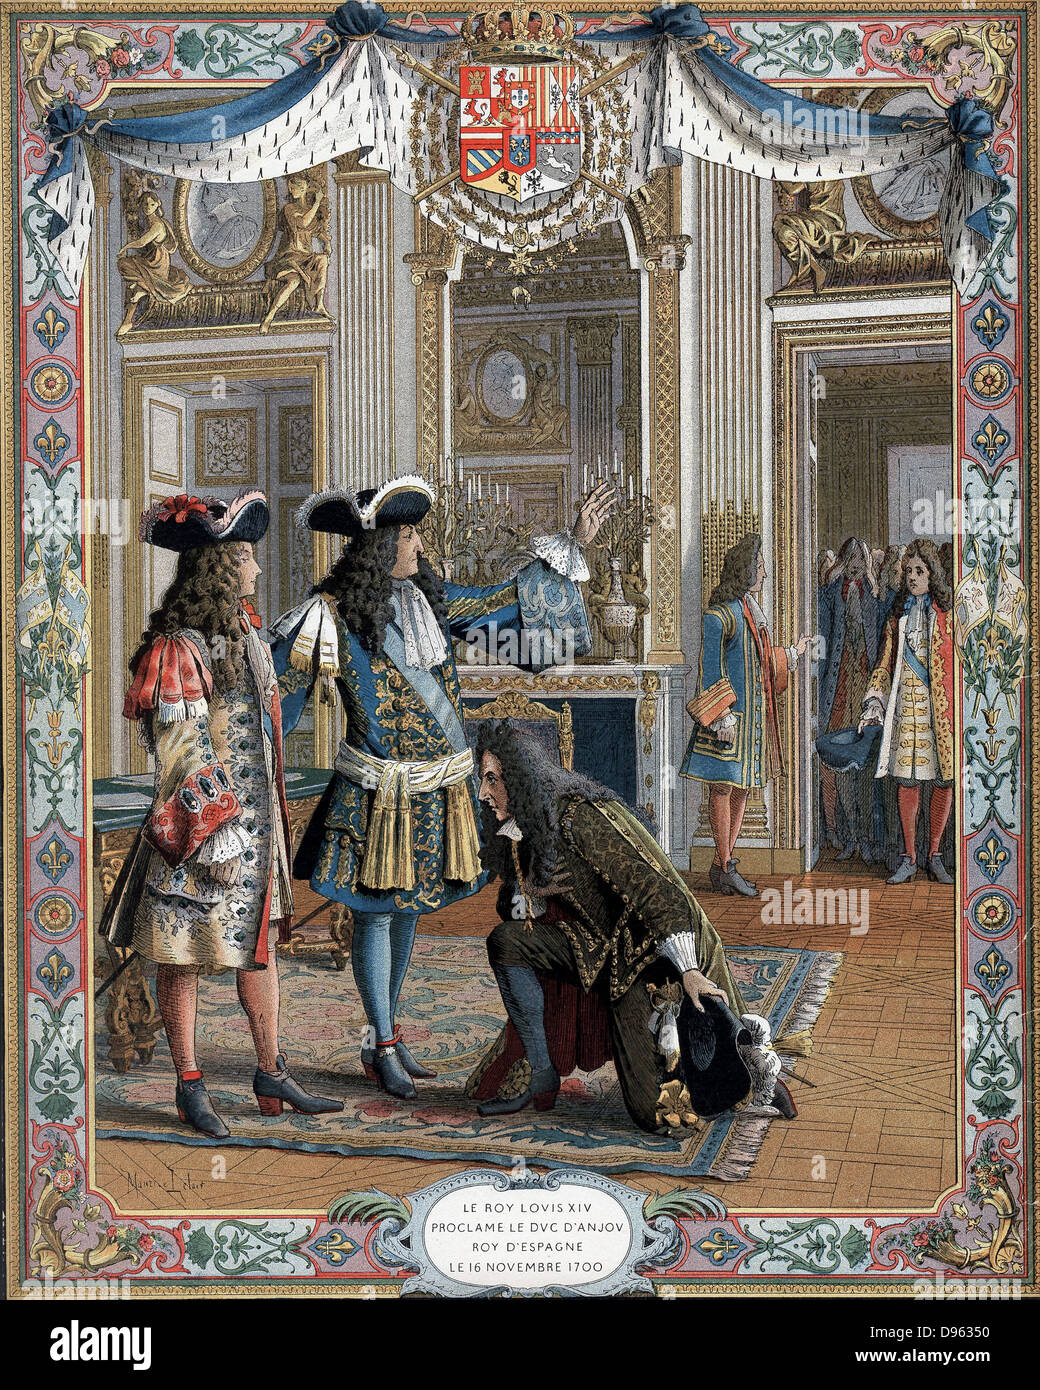 Louis XIV (1638-1715) king of France from 1643, proclaiming duc d'Anjou,  his grandson, king of Spain, 16 November 1700. War of